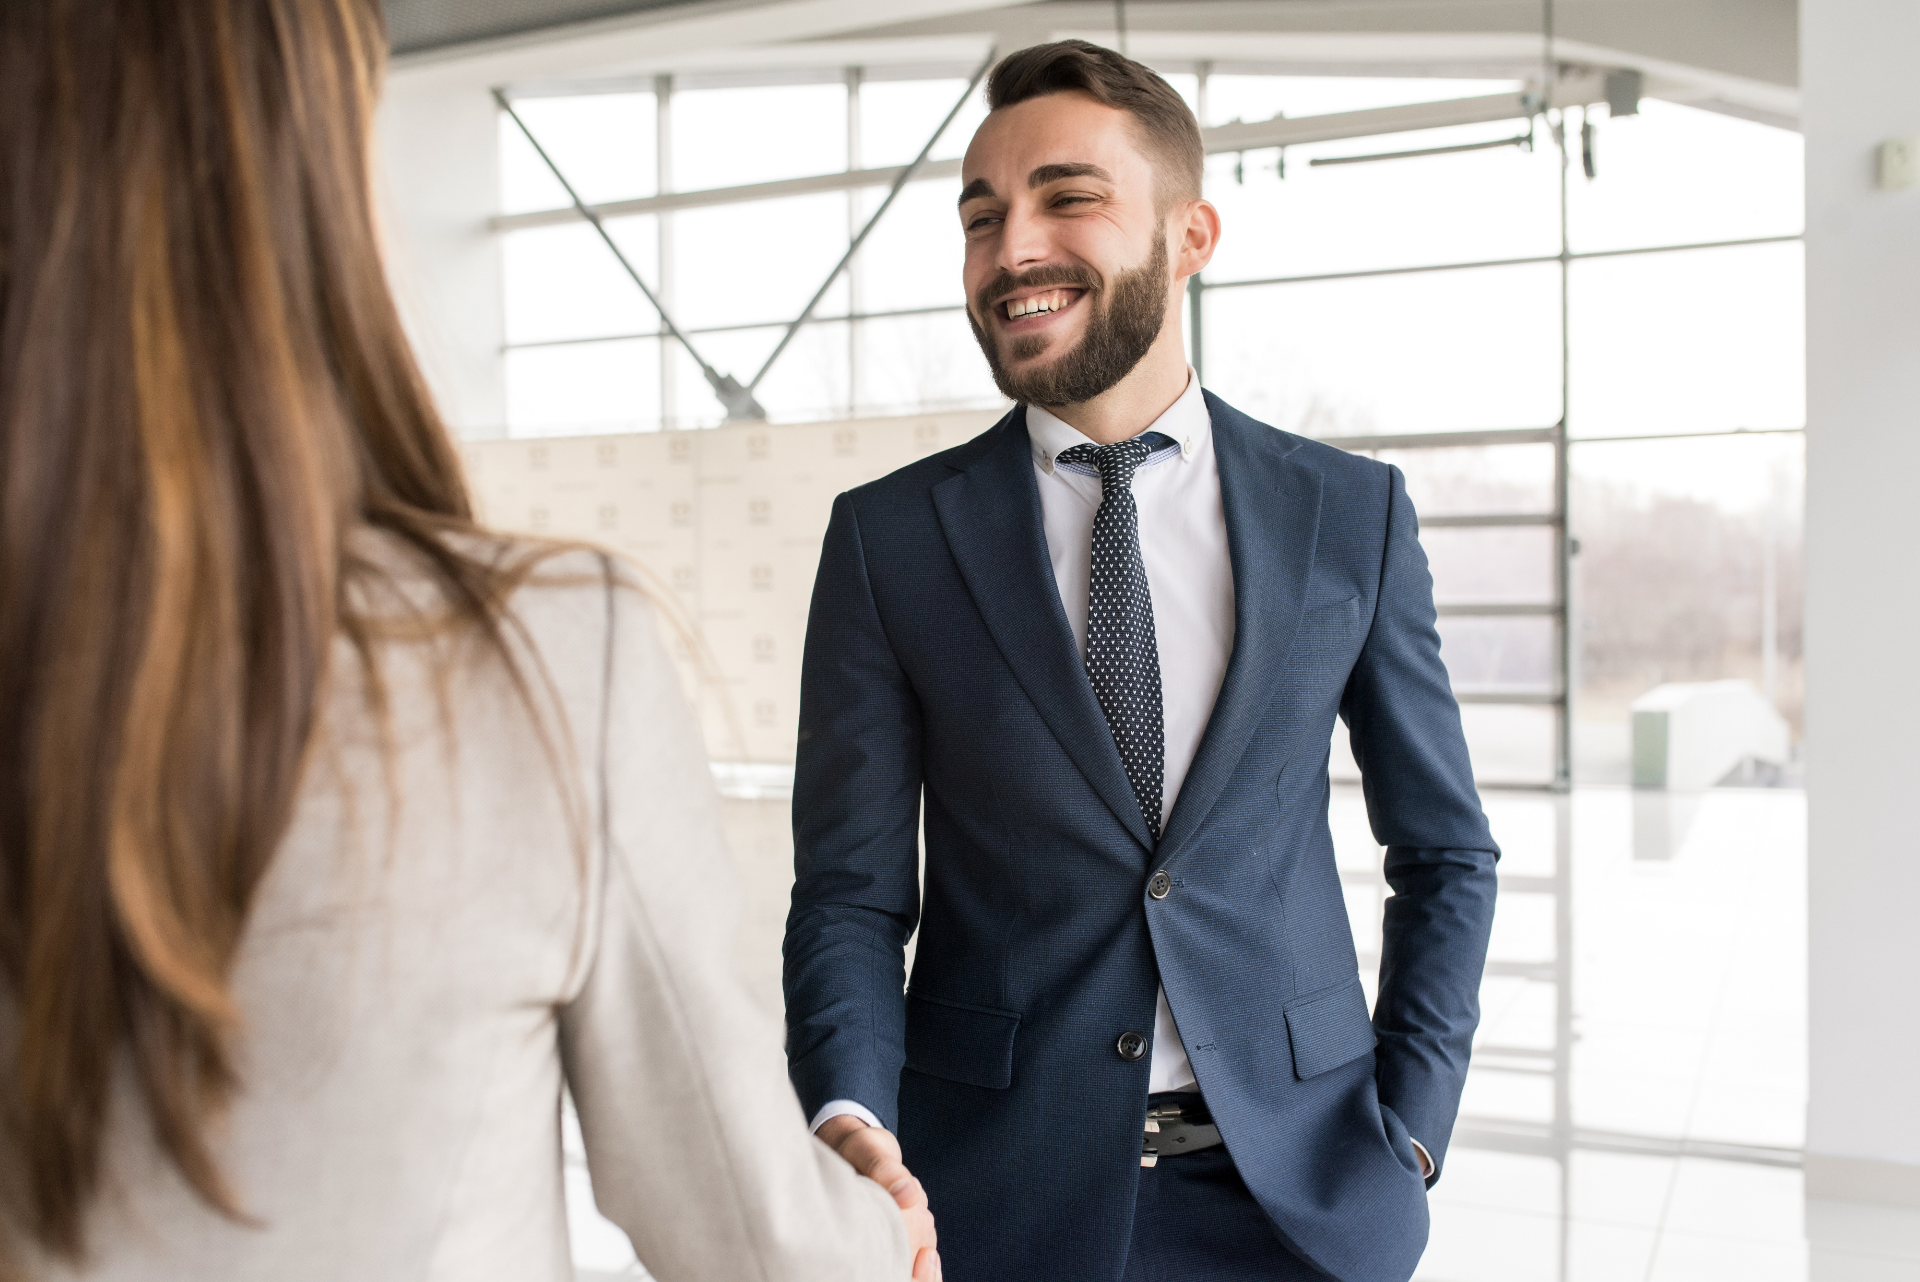 SALES - Want to be a part of an organization that is customer-focused down to it's core? One that understands that customers are the heartbeat of a company and without them, said company ceases to live. If so, consider becoming the newest member of our sales/business development team.